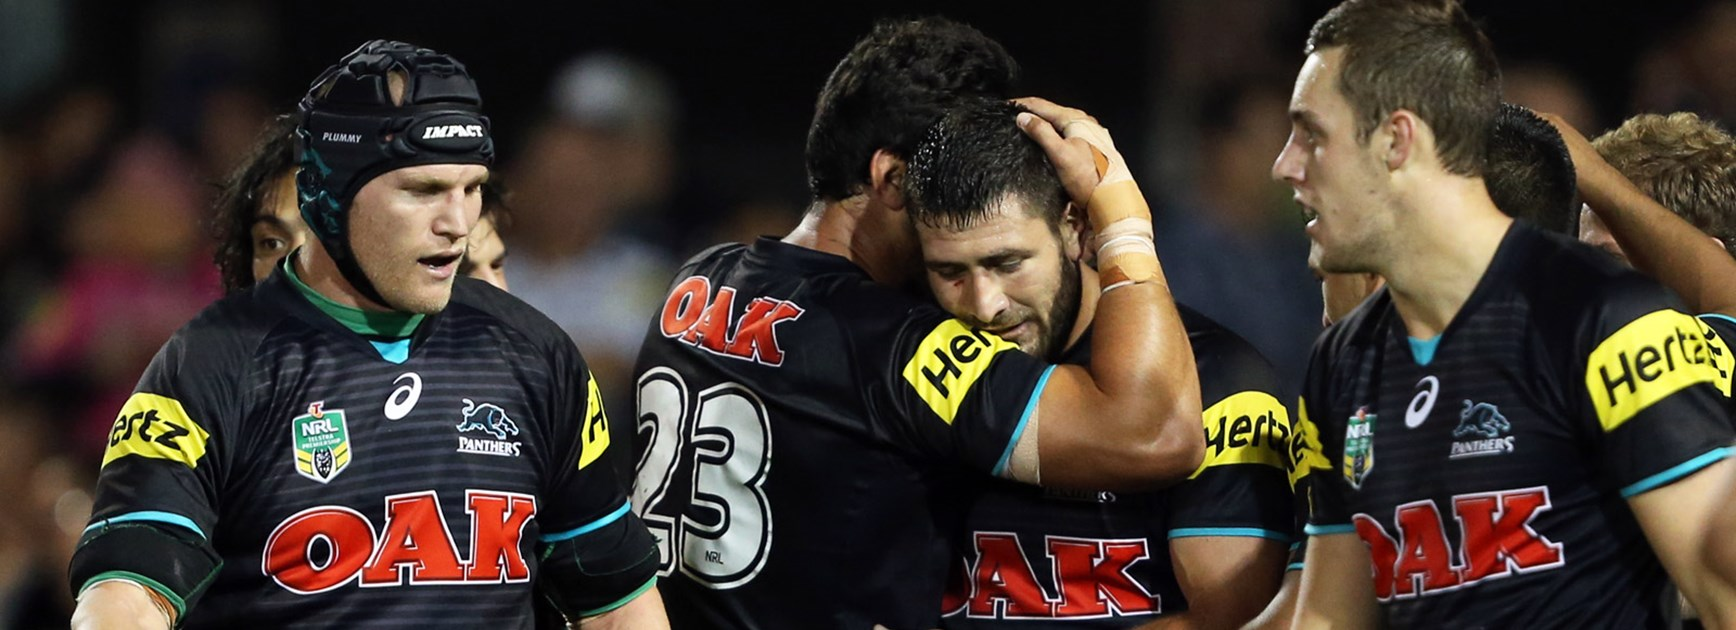 With a massive injury toll, the Panthers narrowly avoided the wooden spoon in 2015.